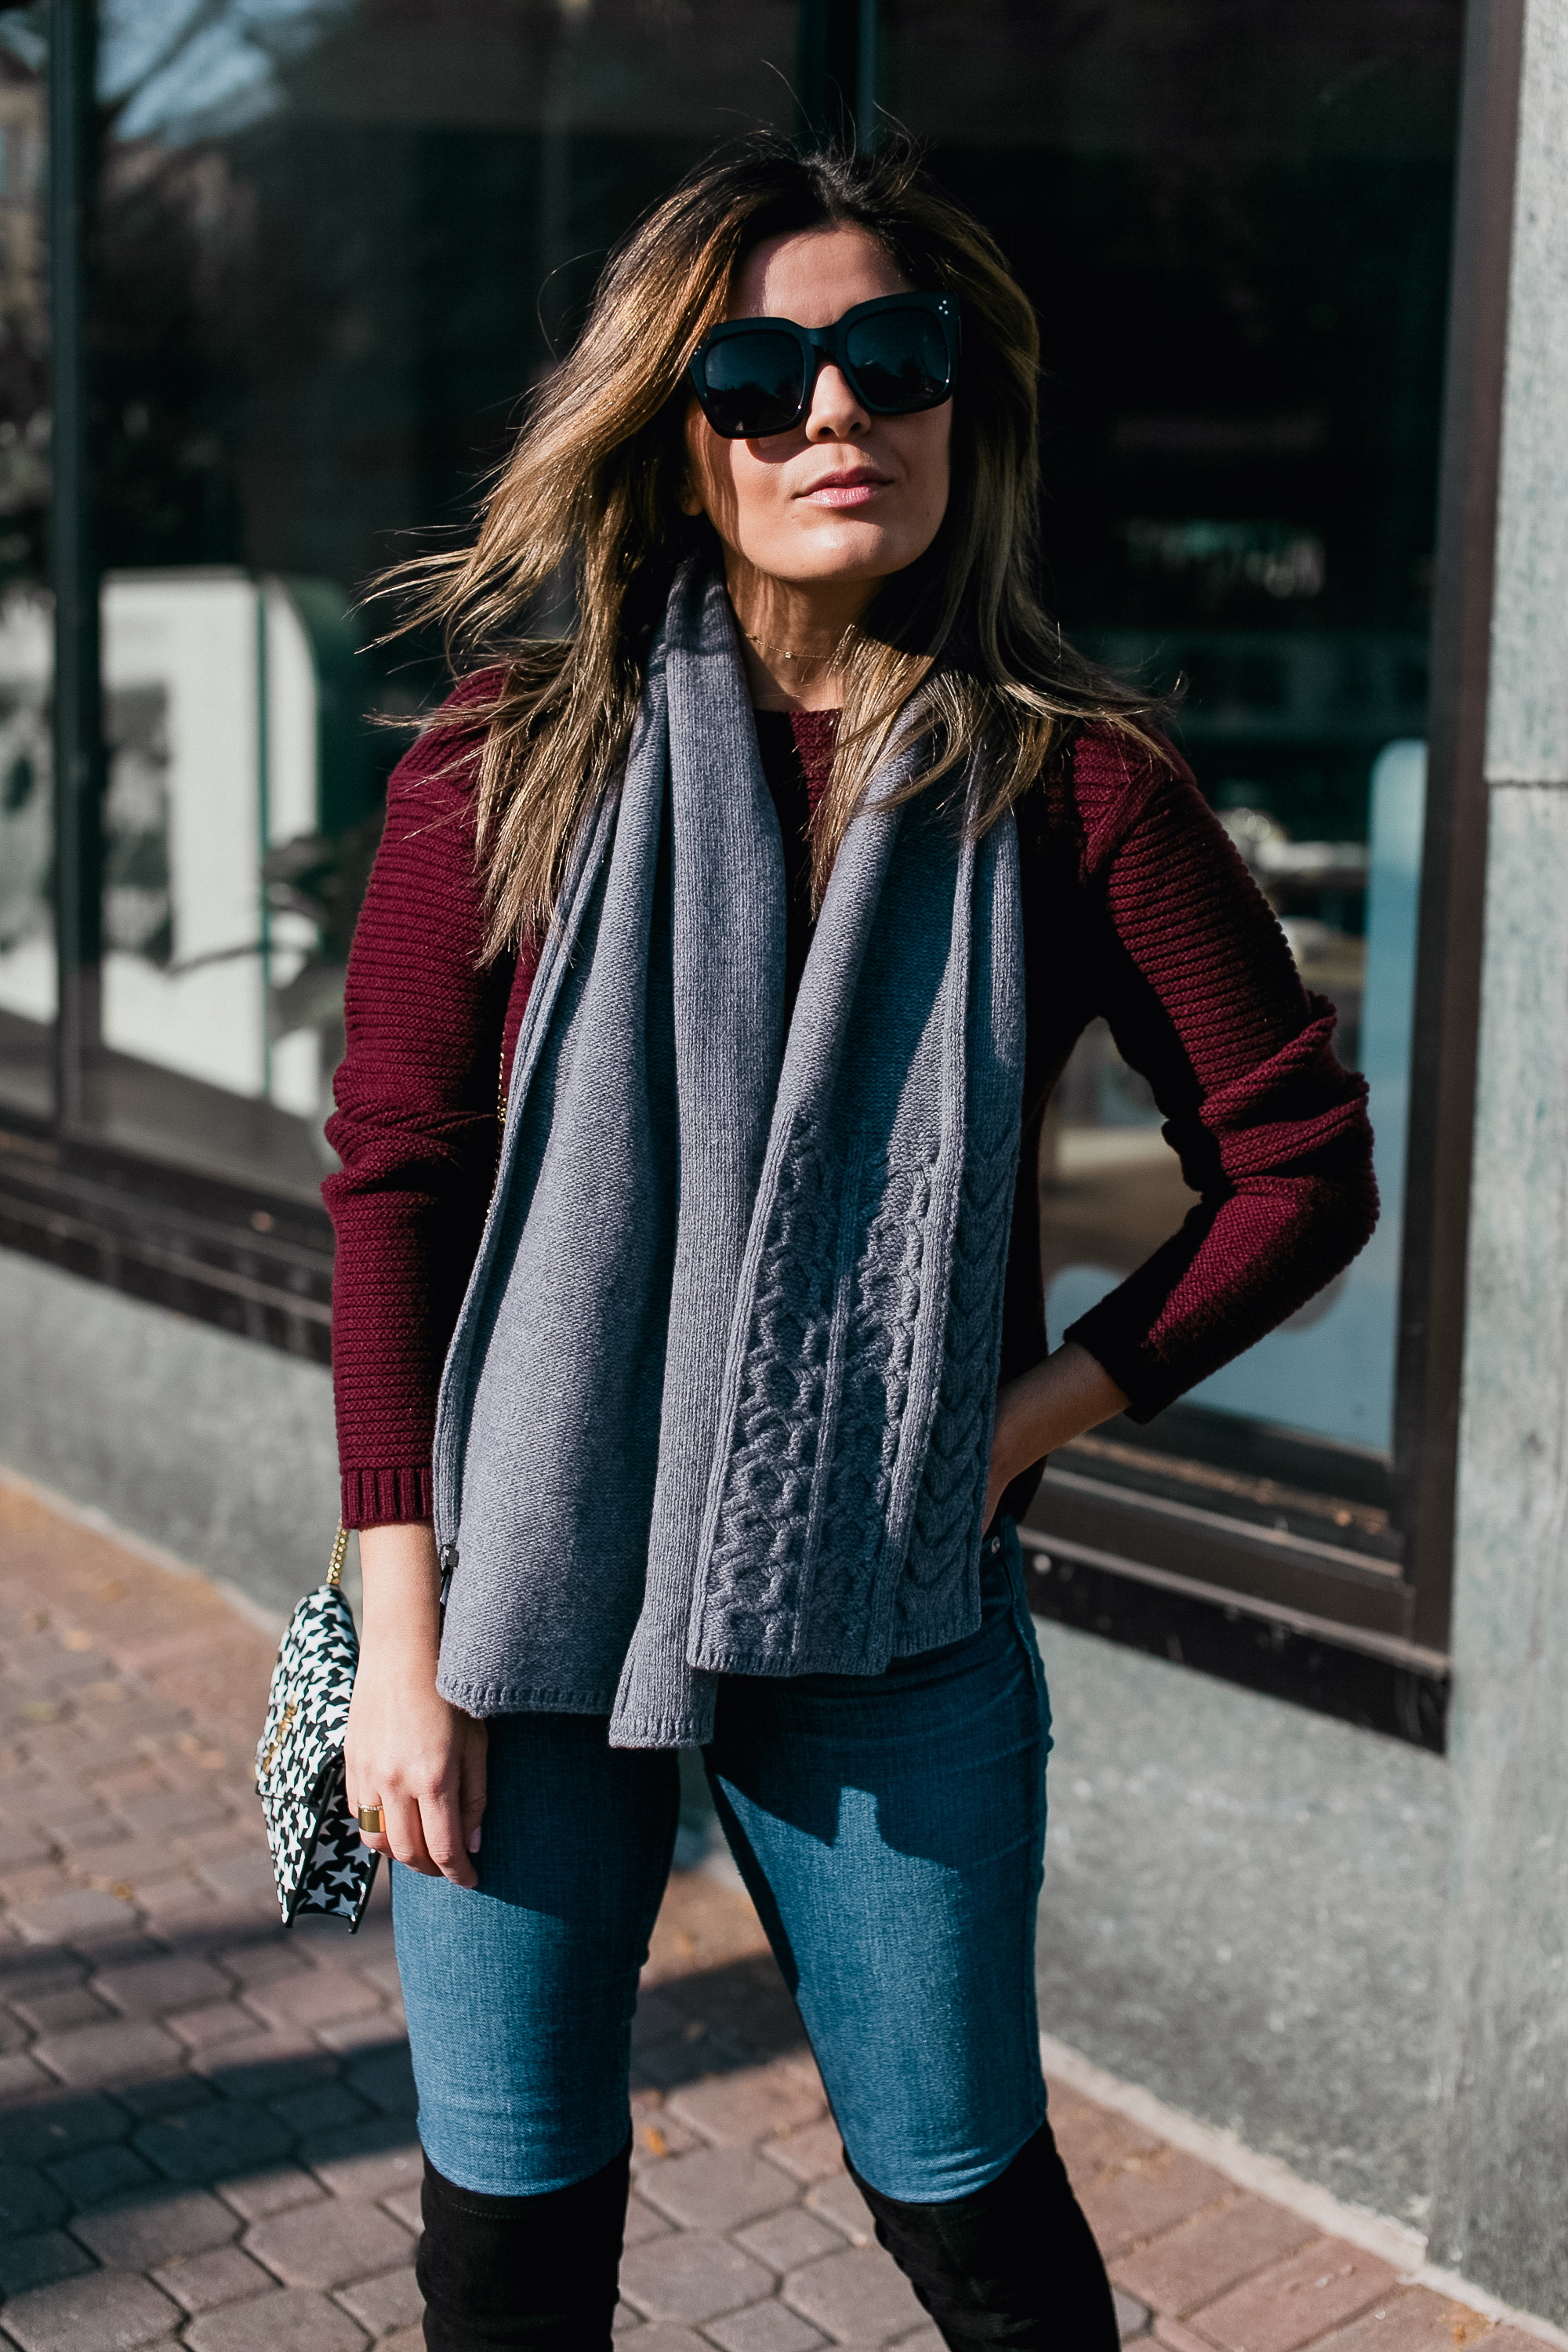 Blogger Sara Azani of Style MBA, a petite brunette woman with blonde highlights, poses outside and wears a Lafayette 148 NY cashmere sweater, Lafayette 148 NY merino cable scarf, and Lafayette 148 NY OTK or over-the-knee boots, along with Céline sunglasses, and a black Gucci belt as part of her burgundy and grey outfit.